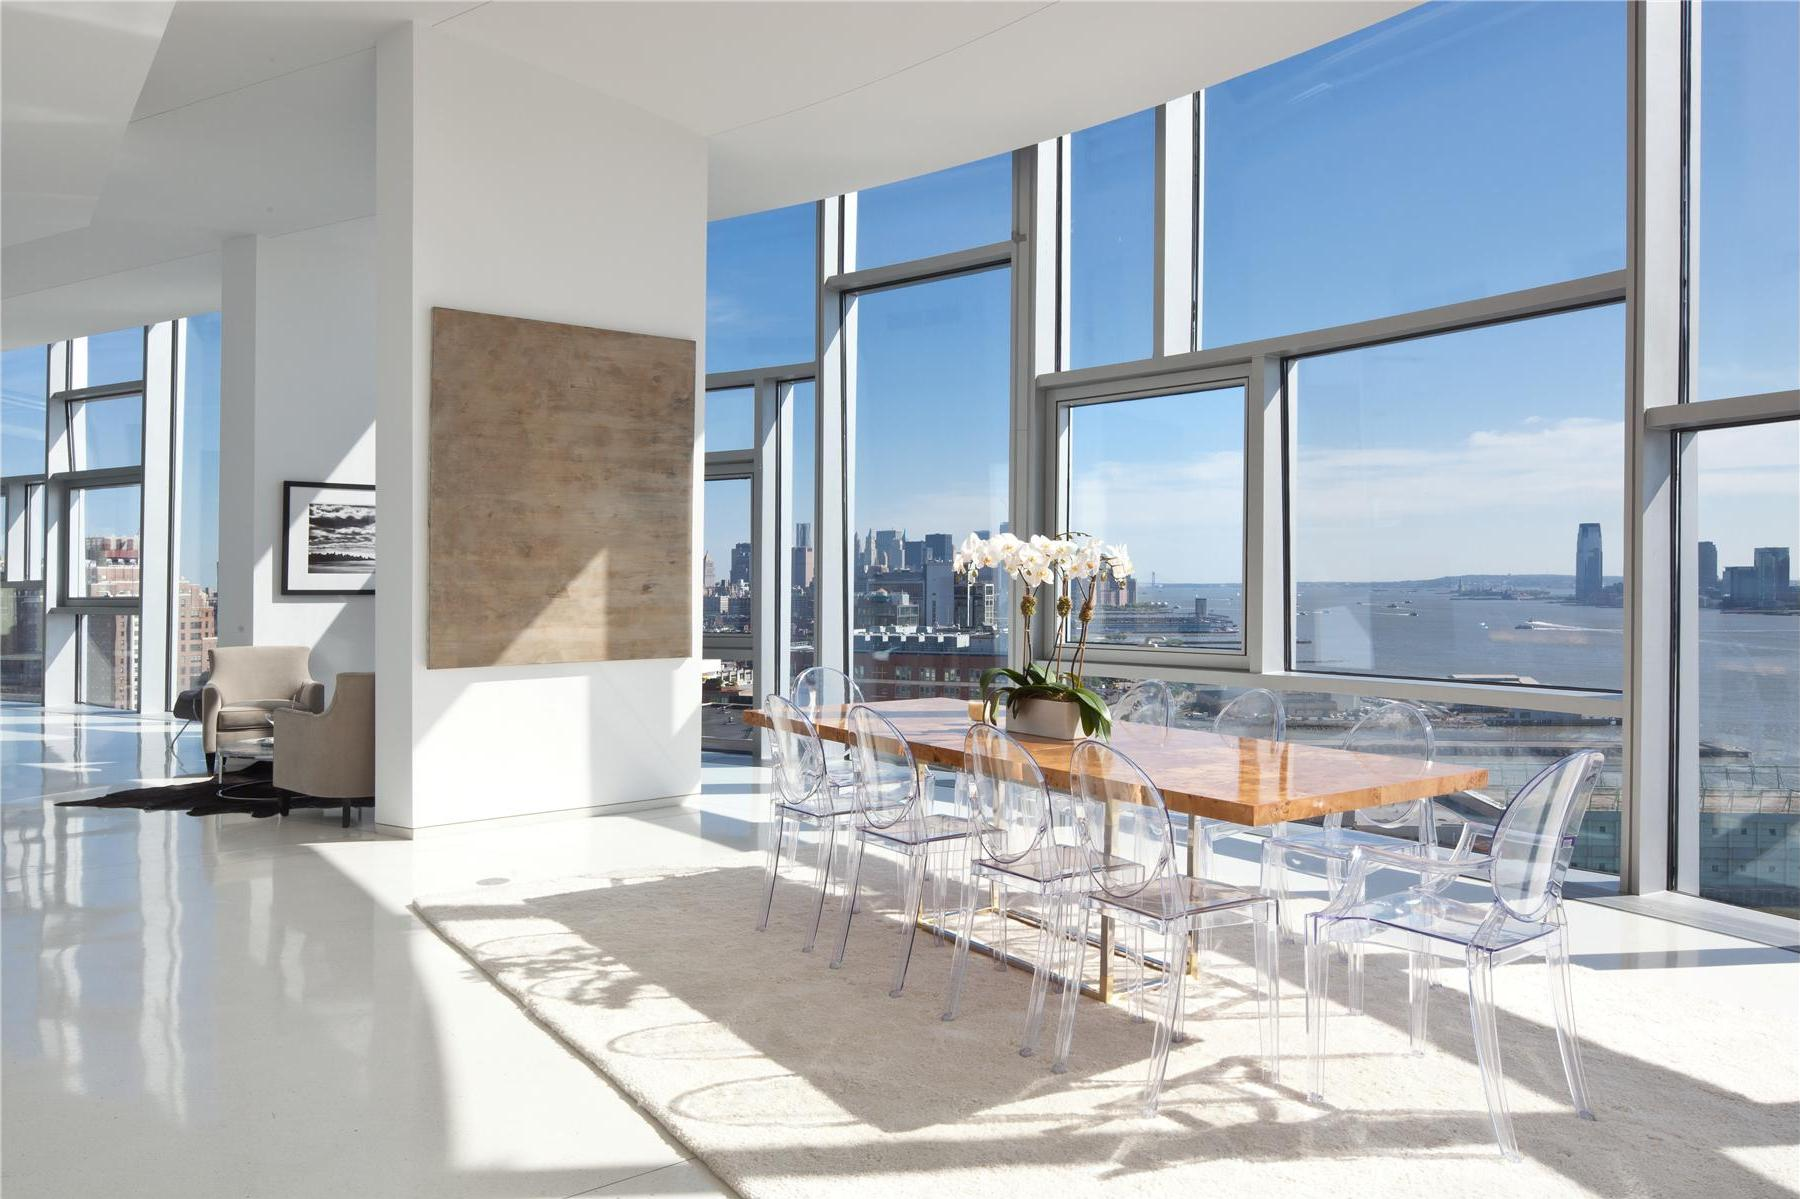 Luxury 100 eleneth avenue penthouse in manhattan for Penthouses for sale in manhattan